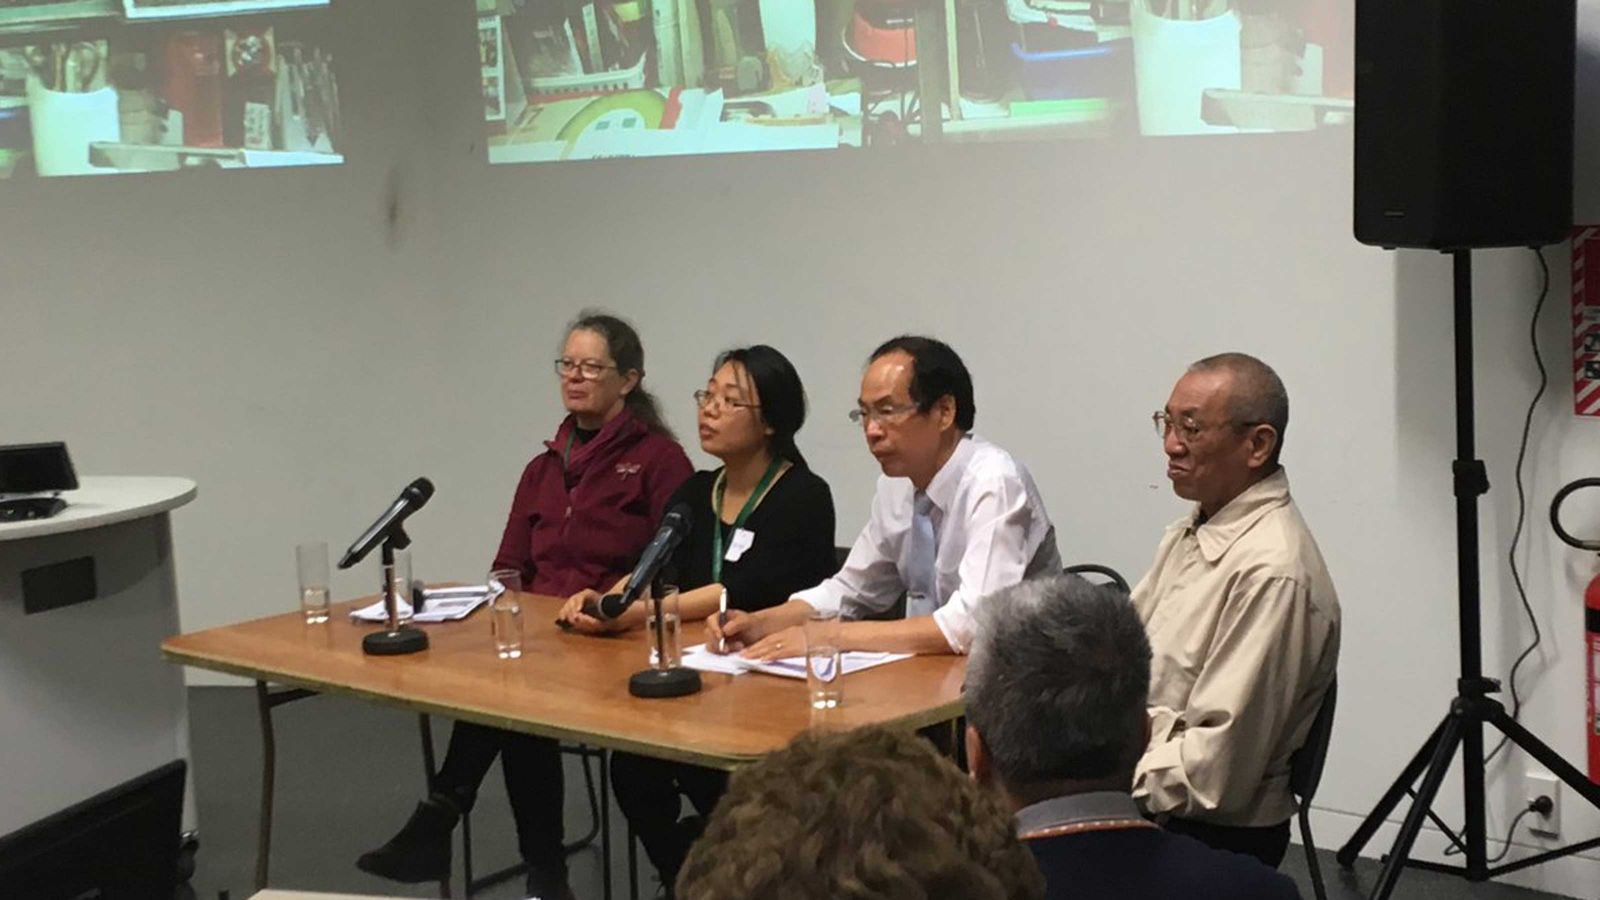 Sydney Shep chairs special panel with three speakers